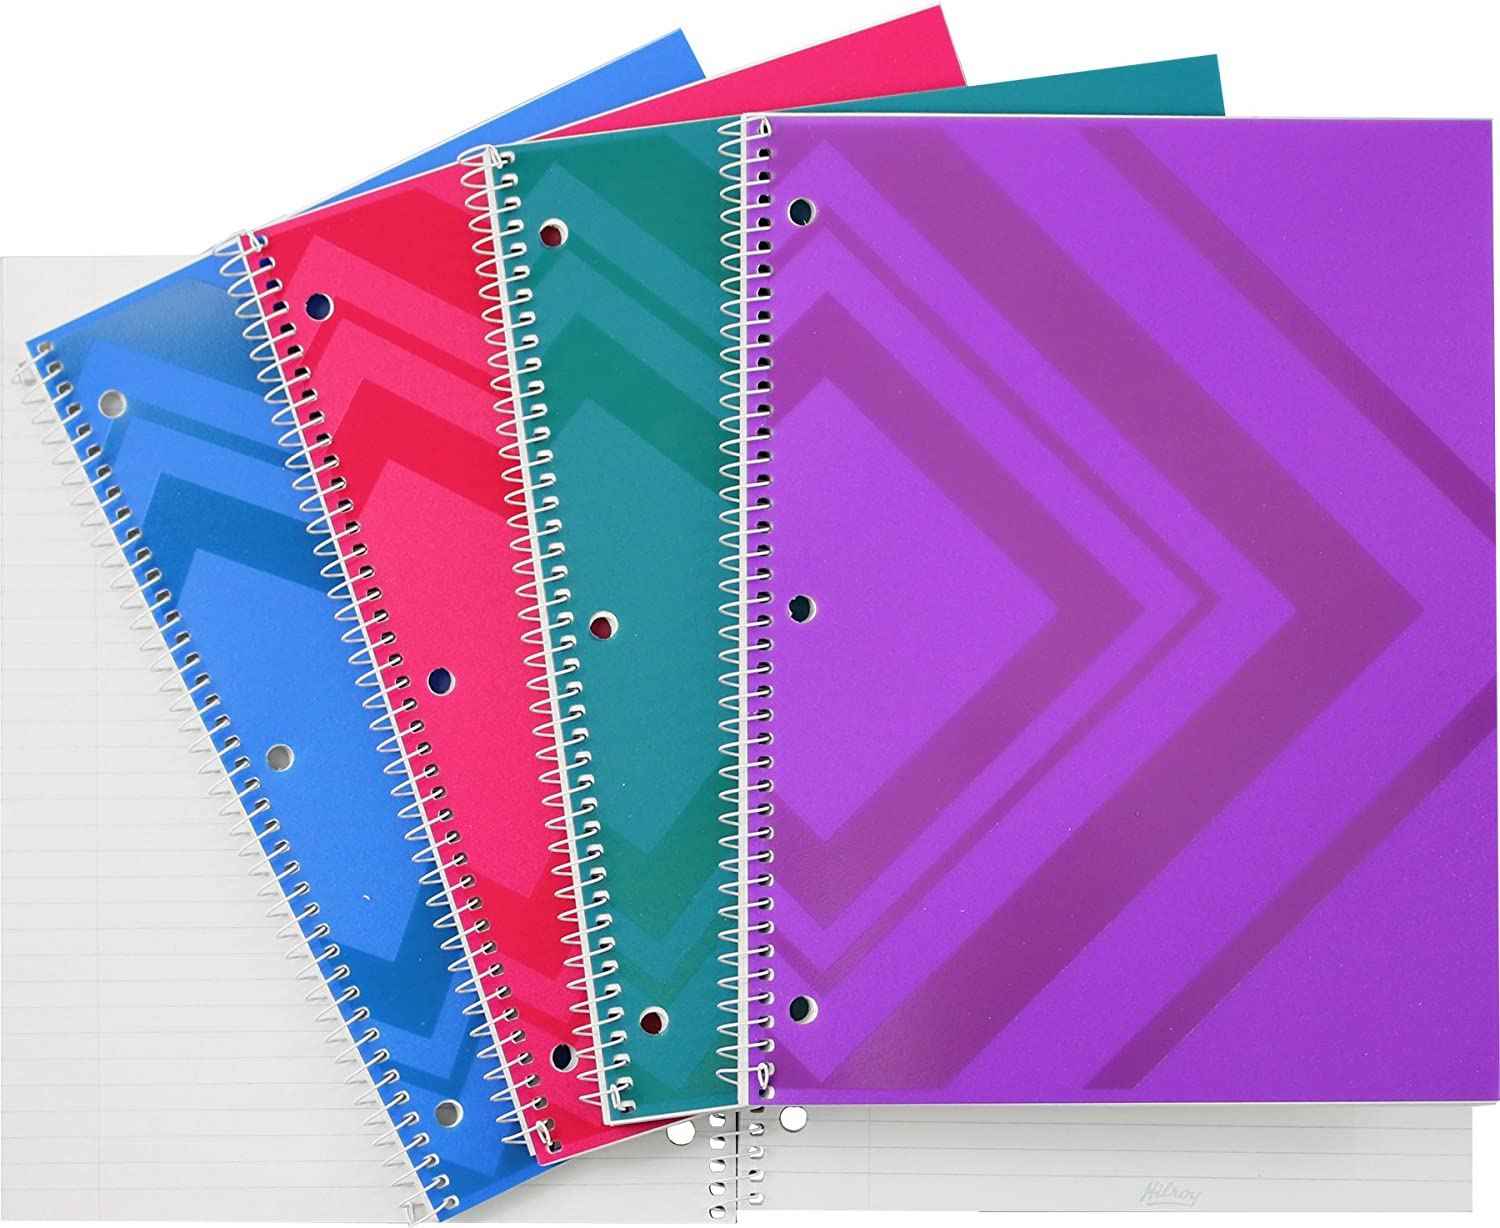 Hilroy 66182 Geometric-Patterned Poly Notebooks, College Ruled, 10-1/2x8-Inch, 100-Sheets/200-Pages, Assorted Colors